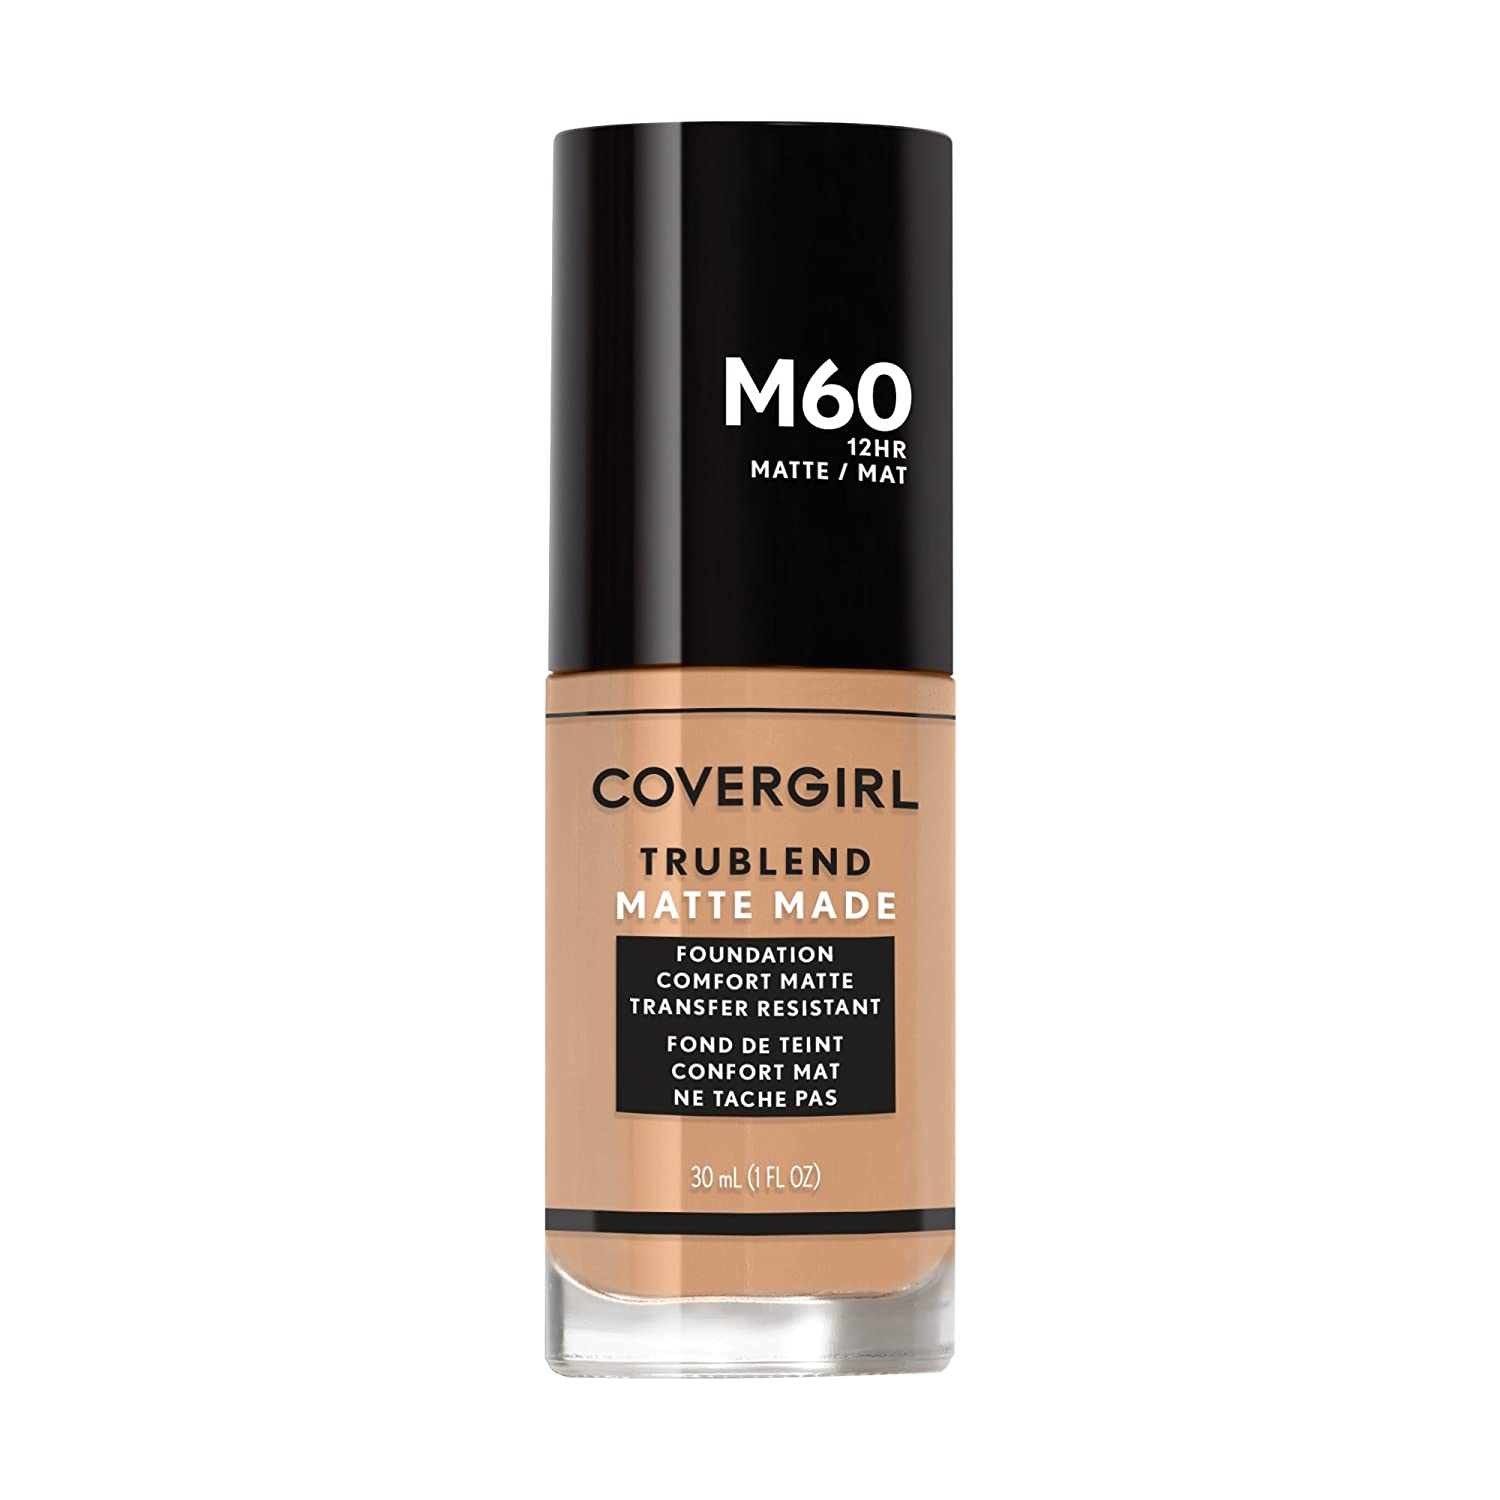 COVERGIRL - TruBlend Matte Made Foundation Coty NULL